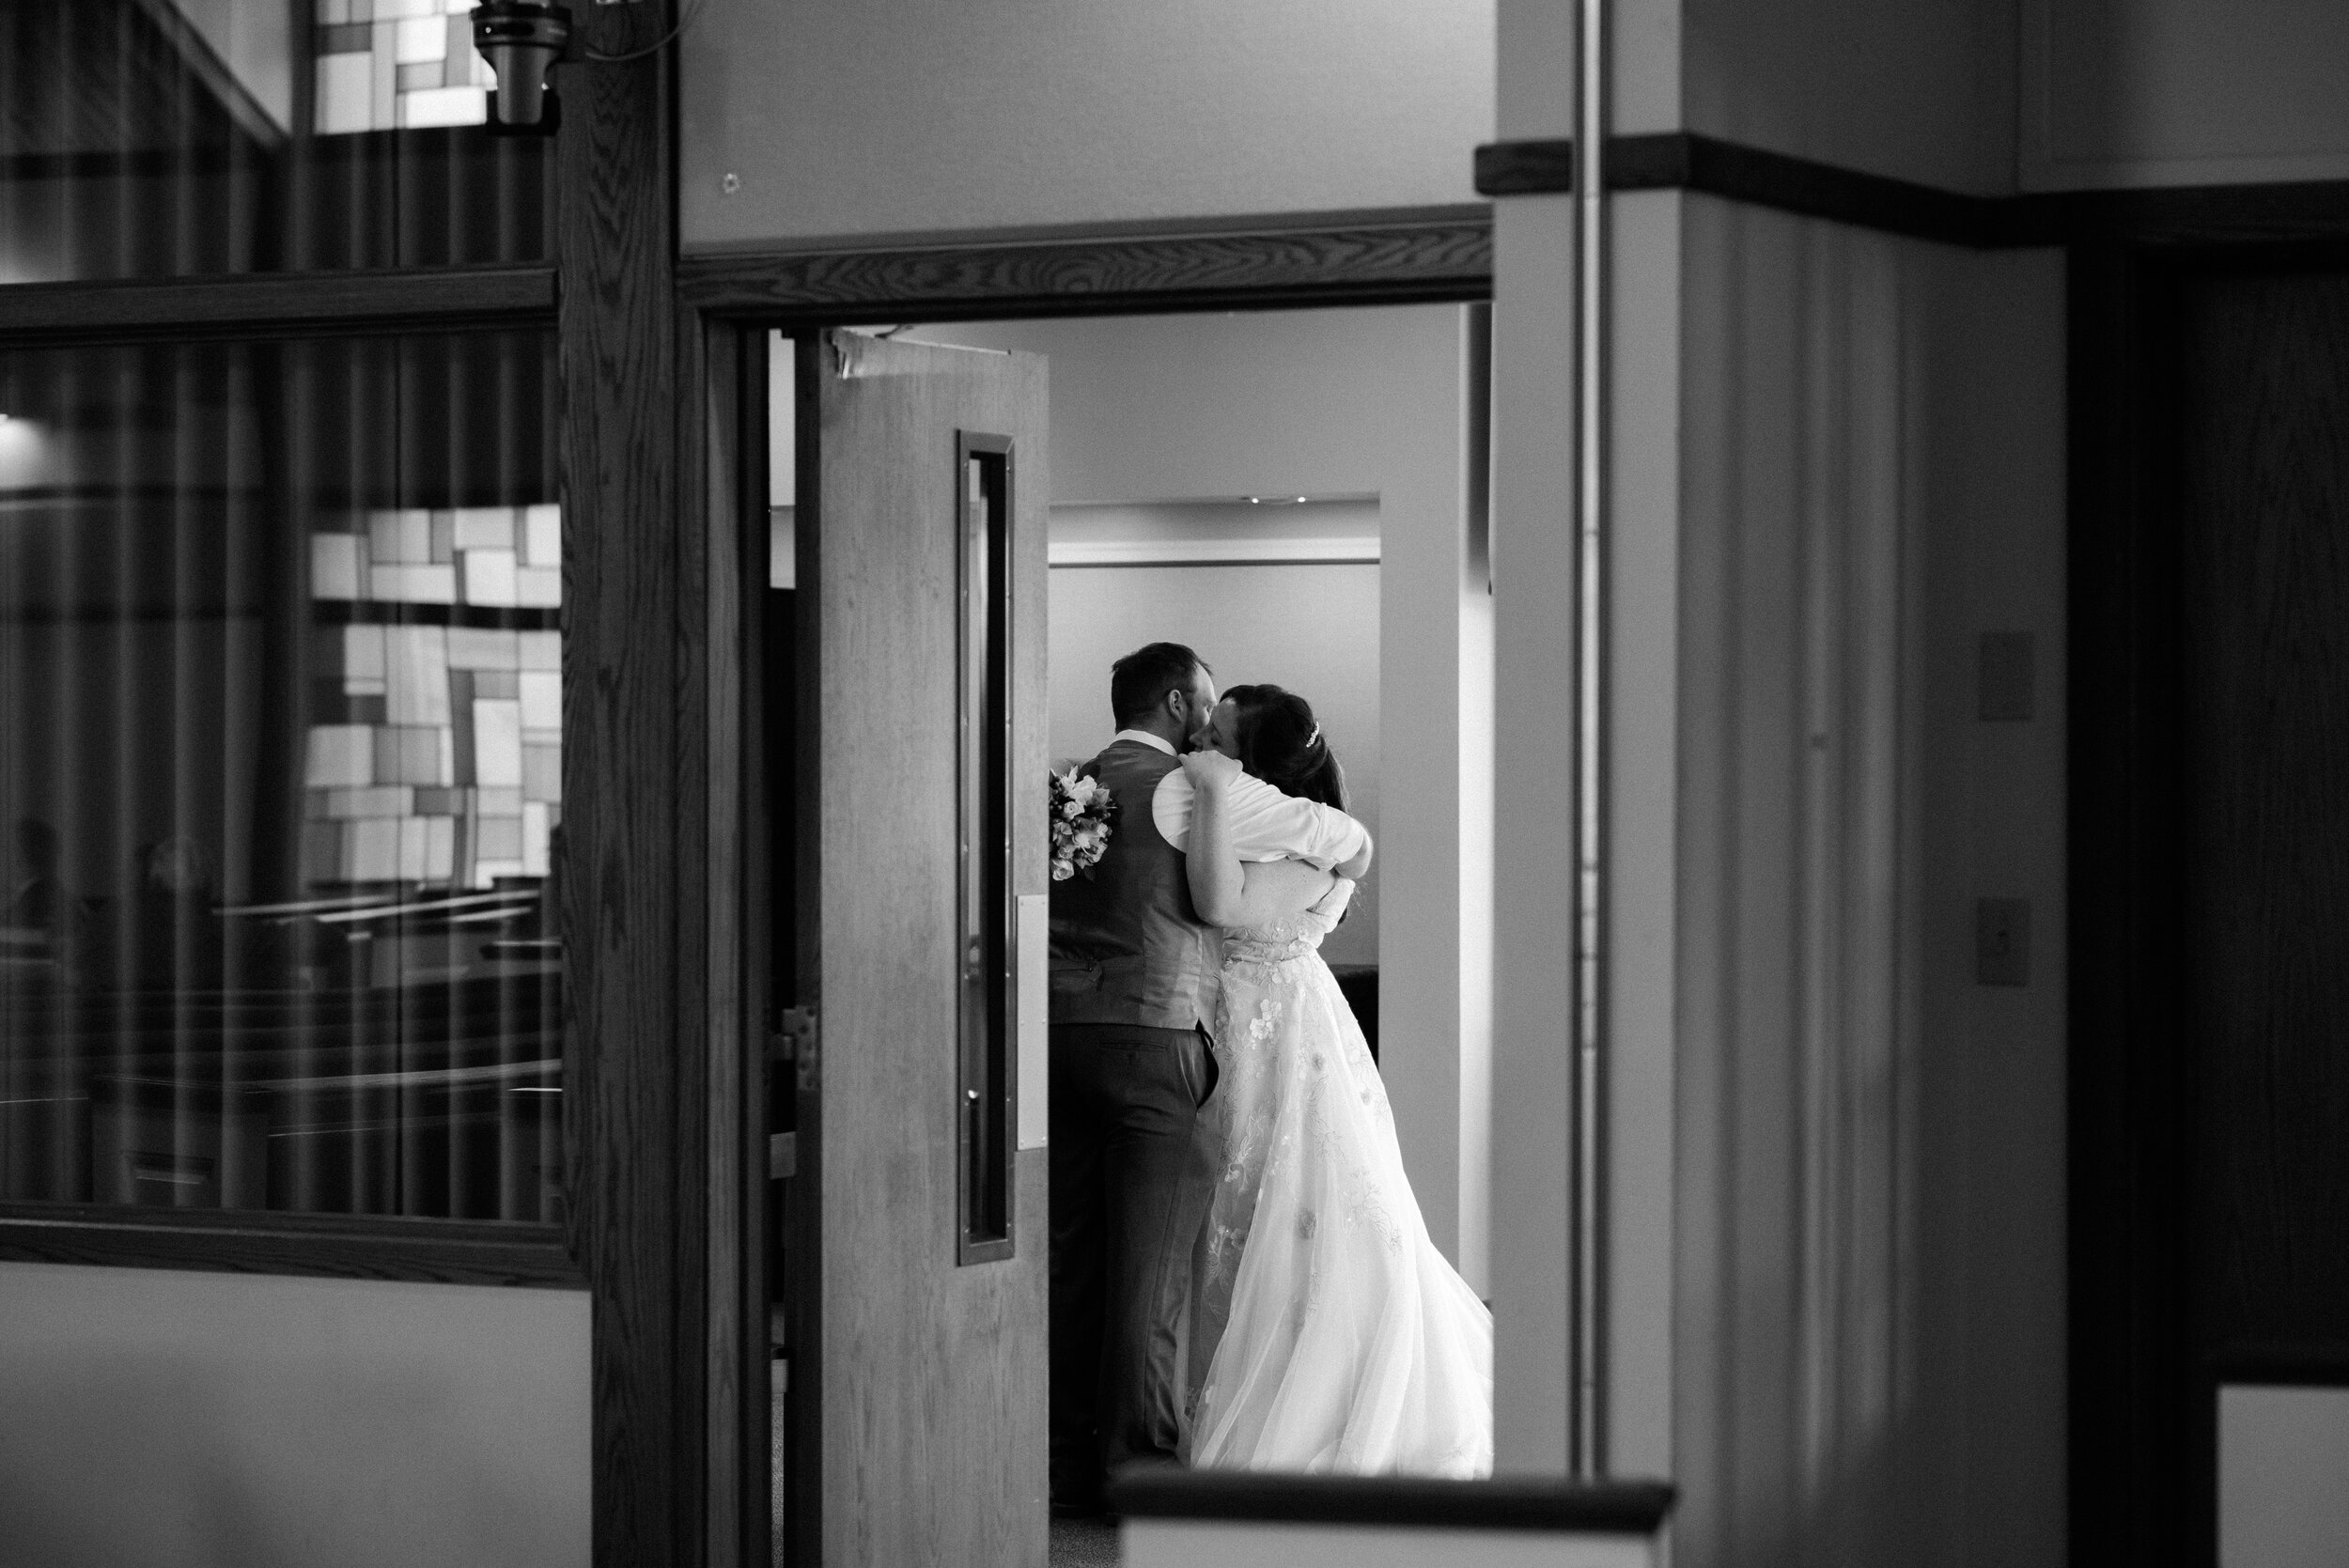 Wedding couple embracing after their ceremony.